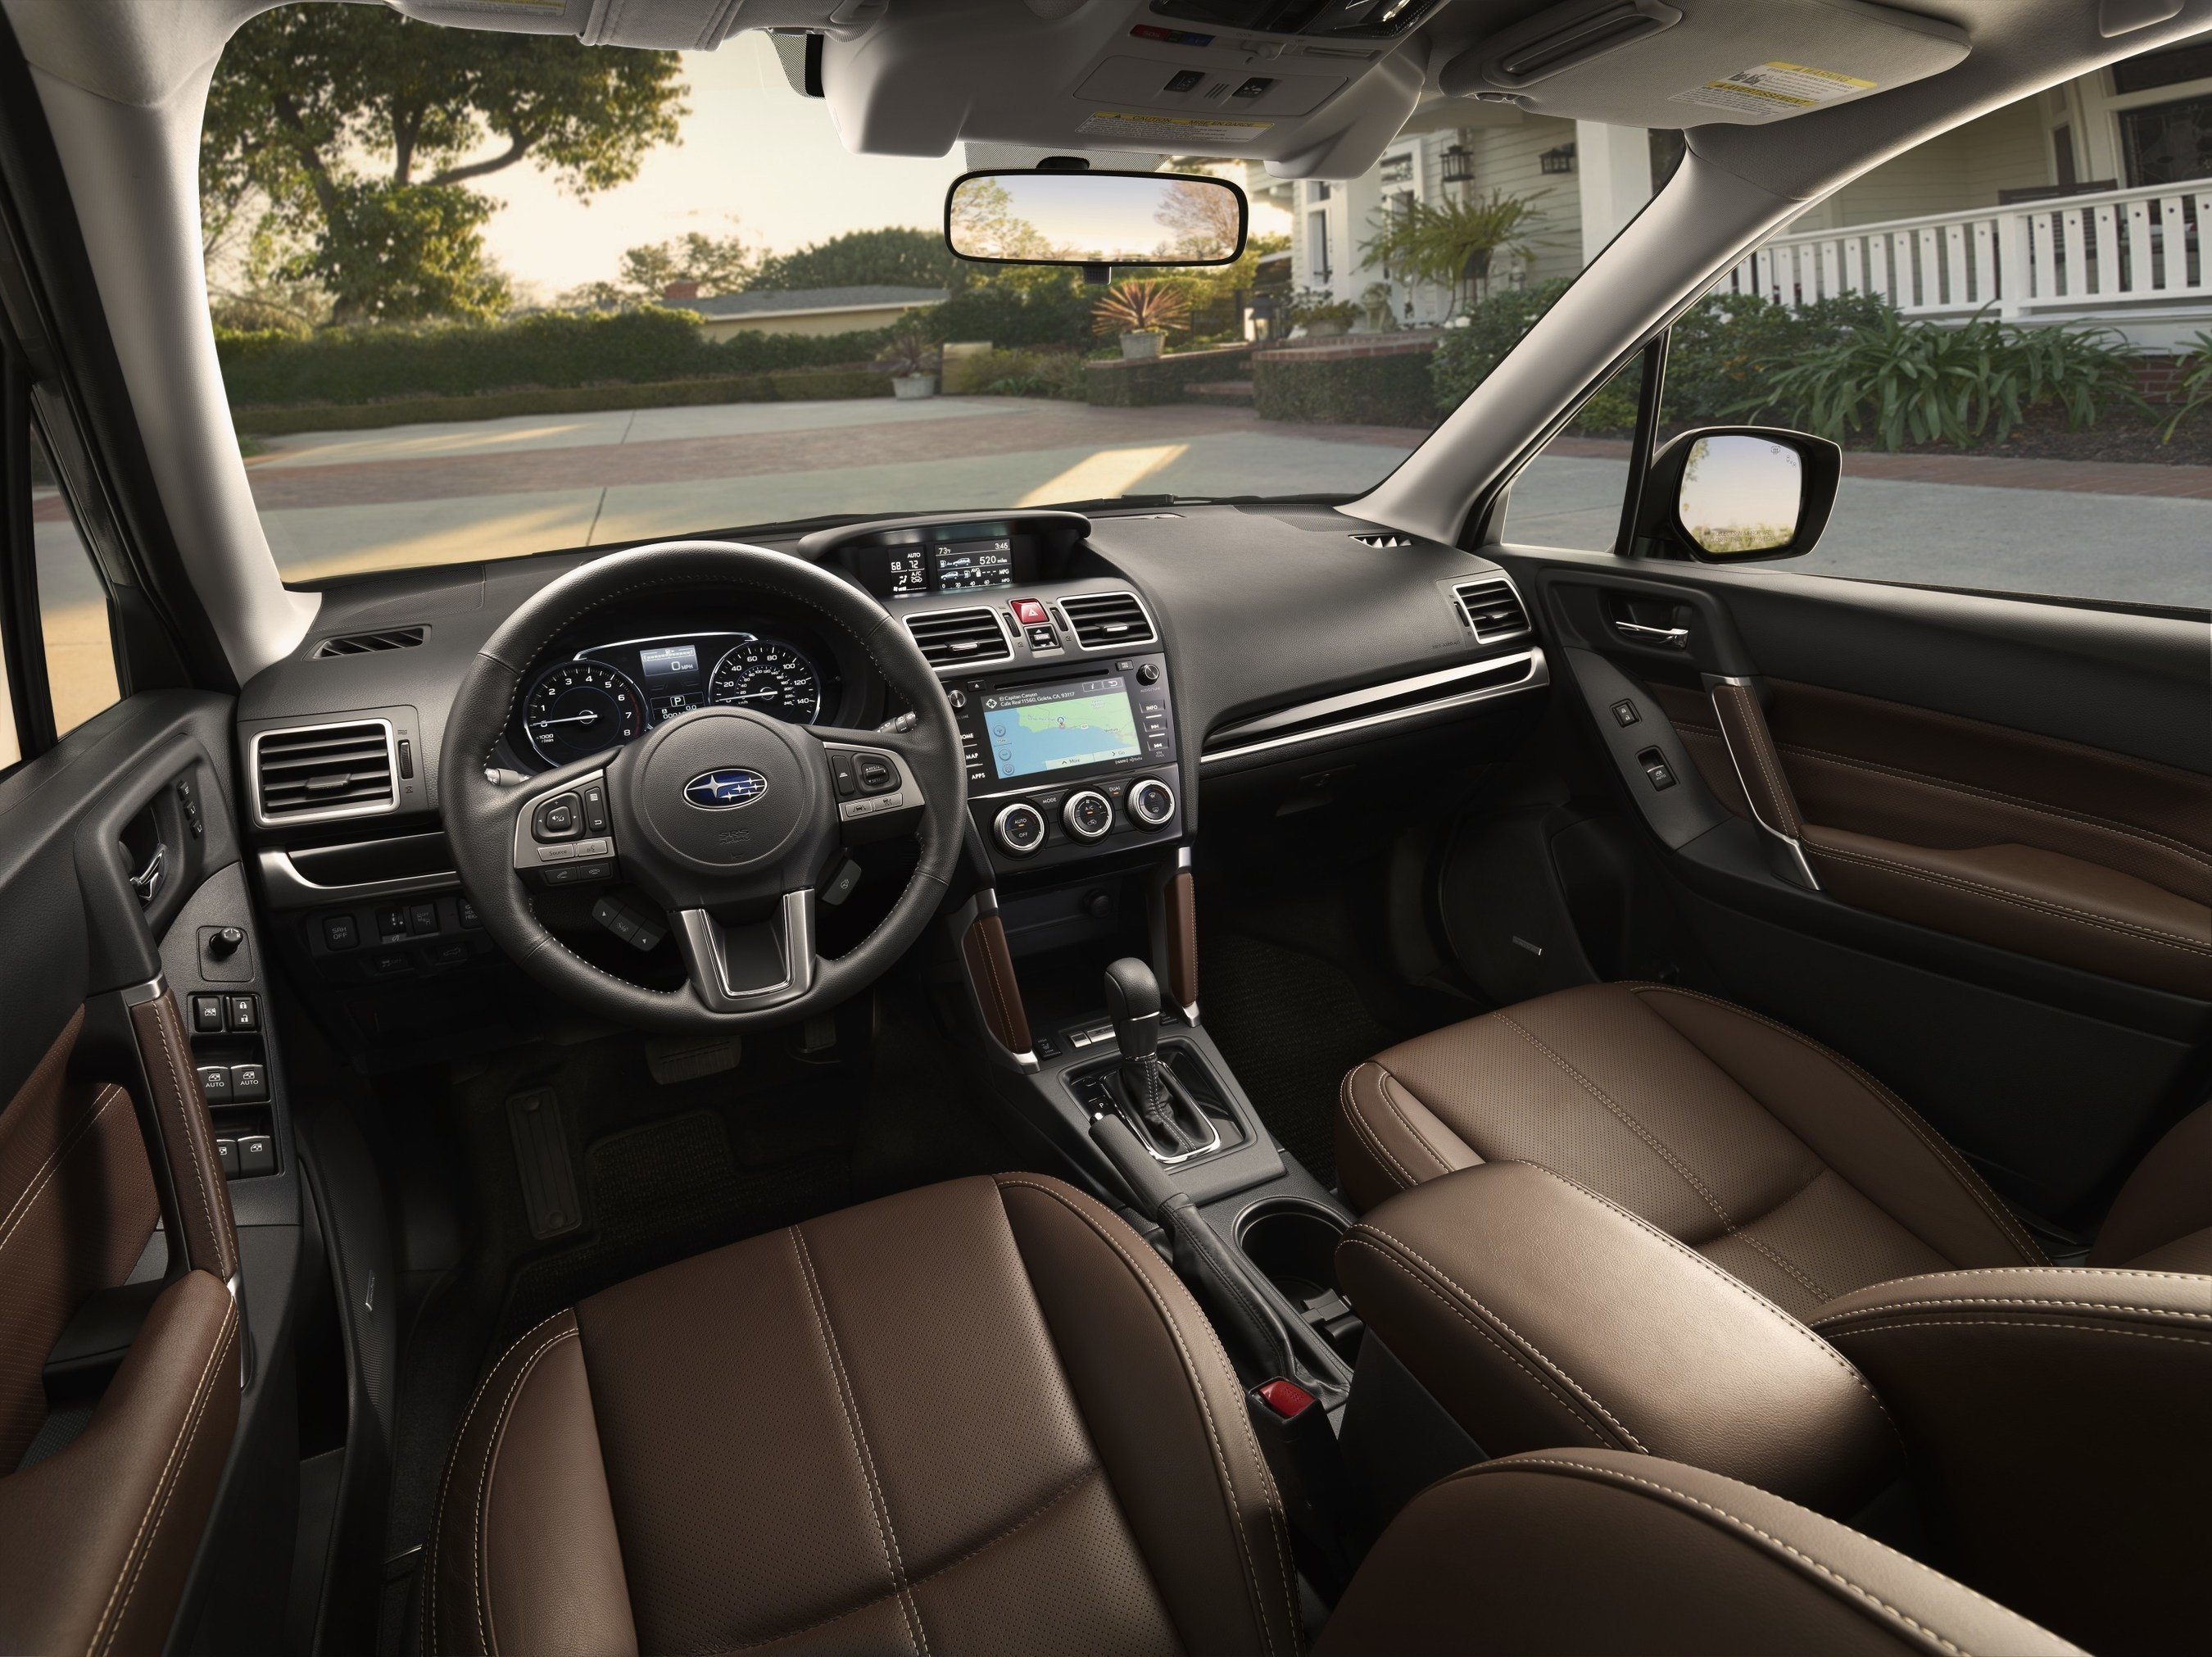 2017 Subaru Forester Offers Advanced Safety Features And Greater Comfort